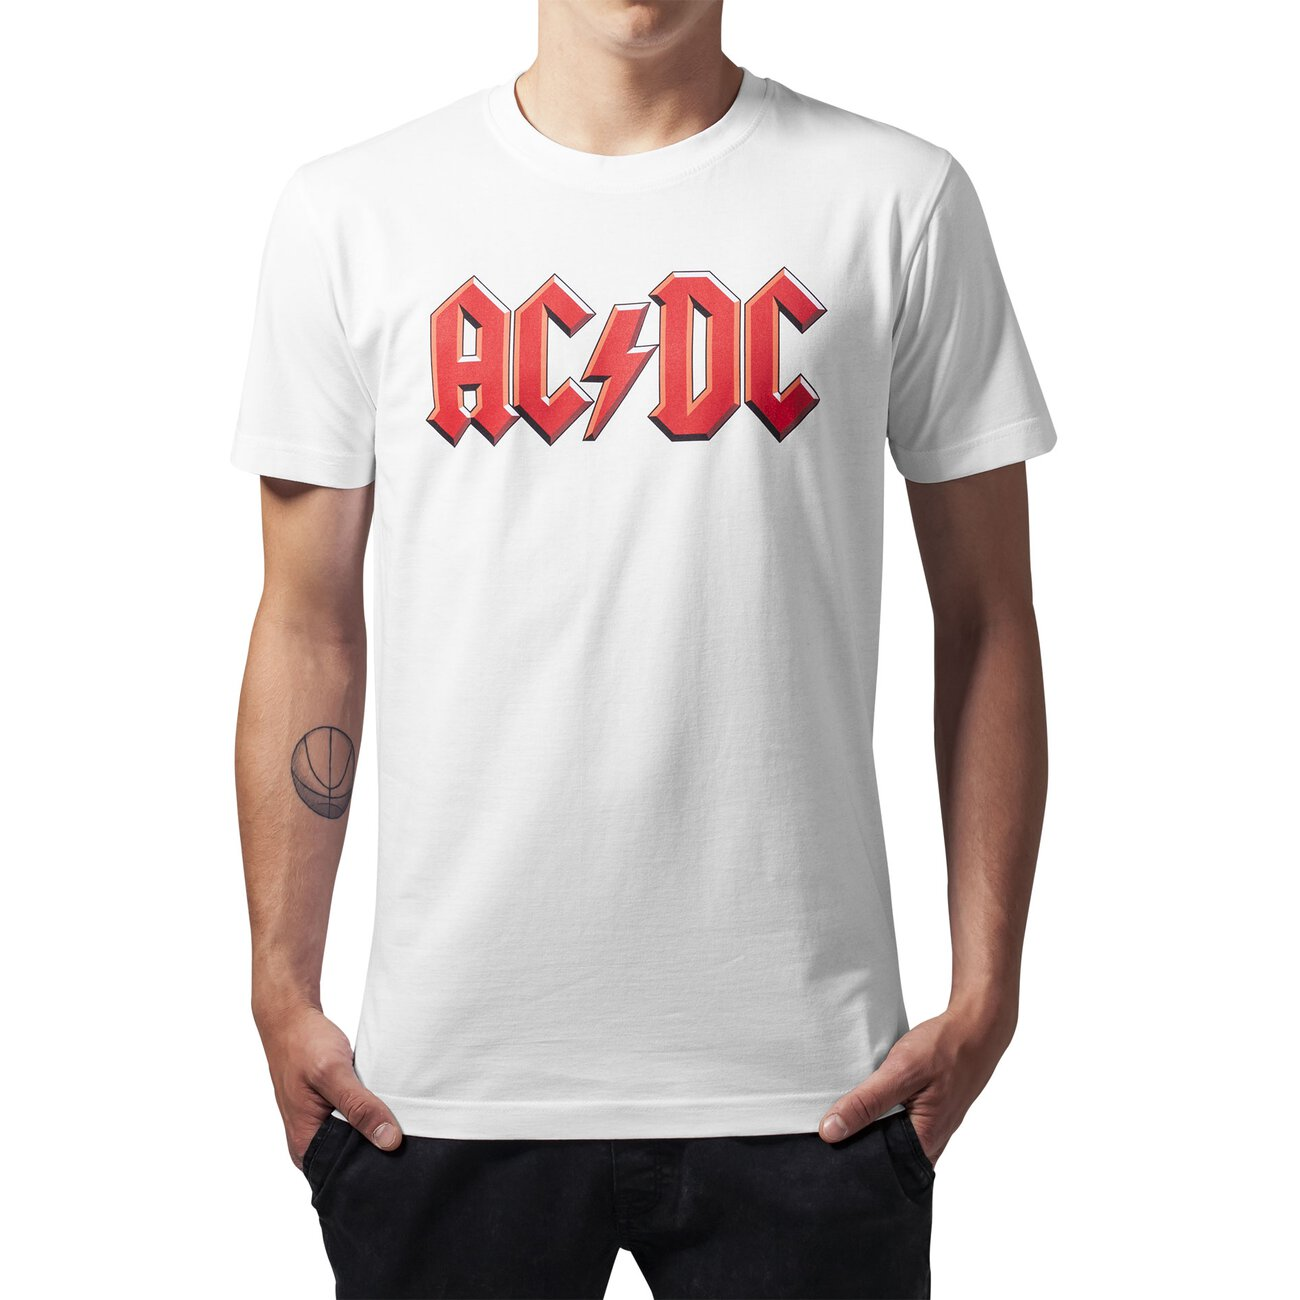 ac dc t shirt mister tee ac dc logo motiv shirt mt 353 wei. Black Bedroom Furniture Sets. Home Design Ideas